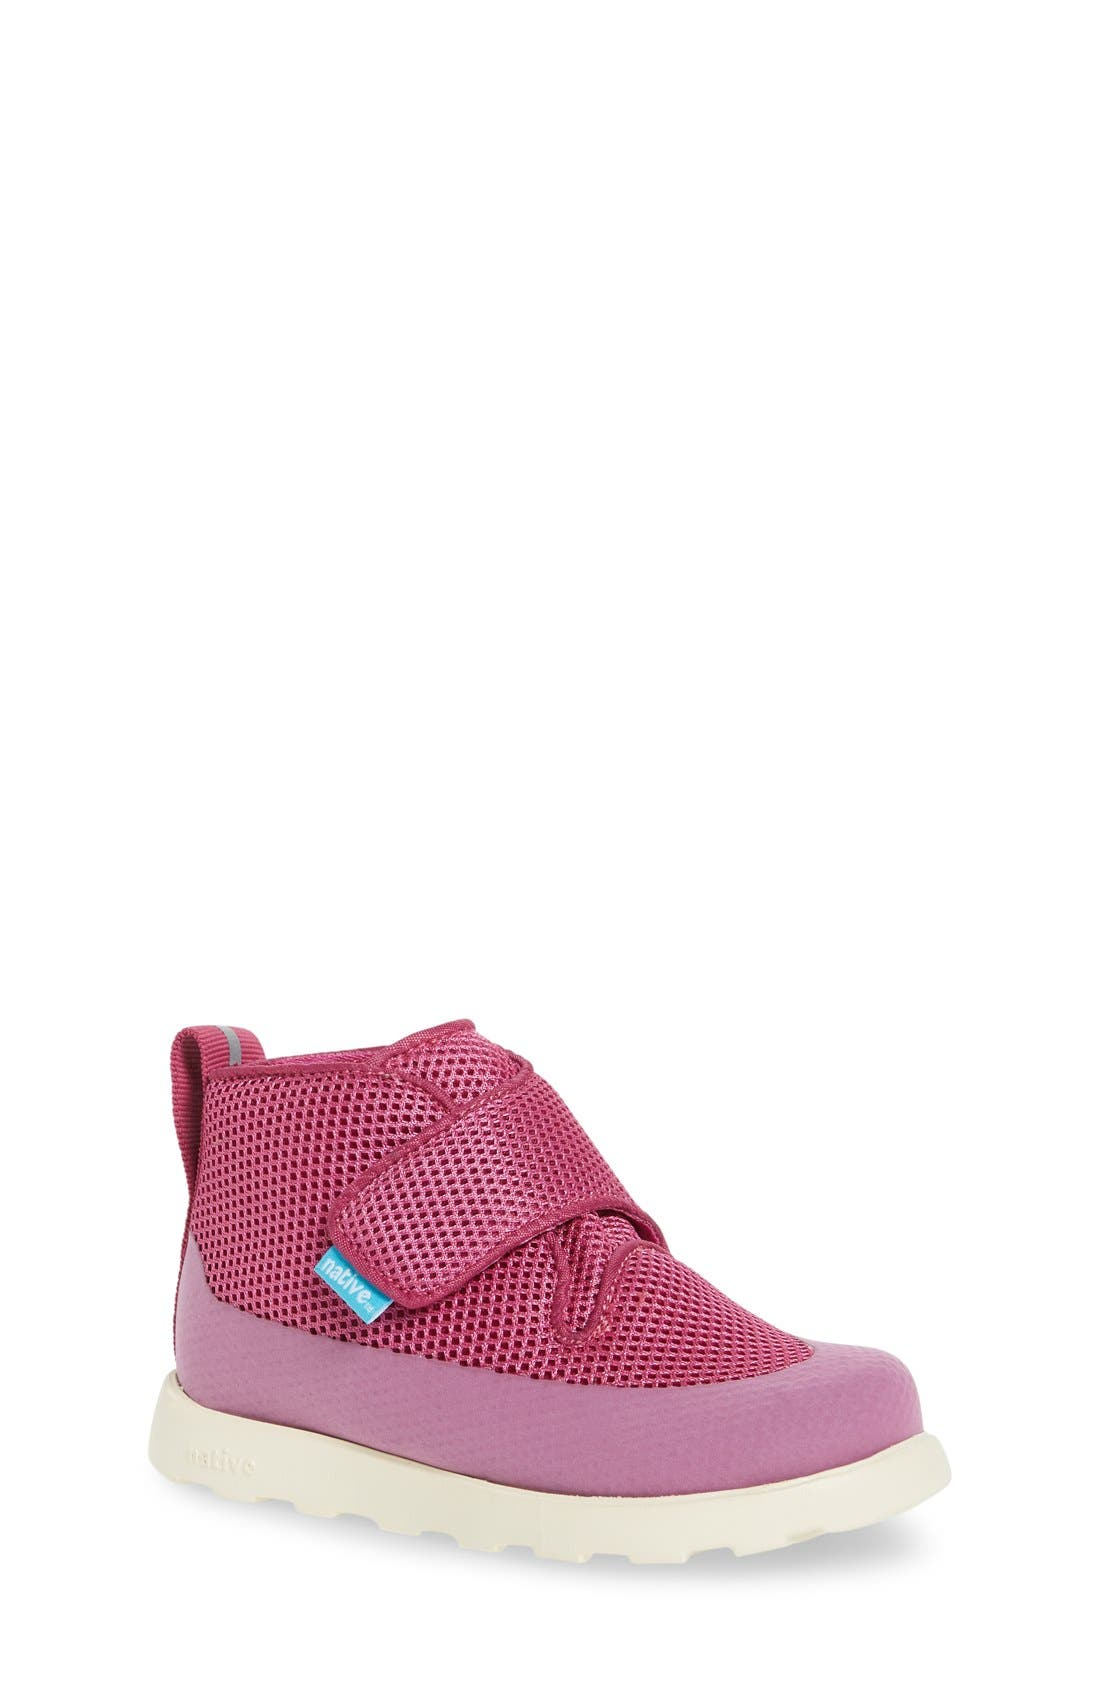 Main Image - Native Shoes 'Fitzroy Fast' Water Resistant Boot (Walker & Toddler)